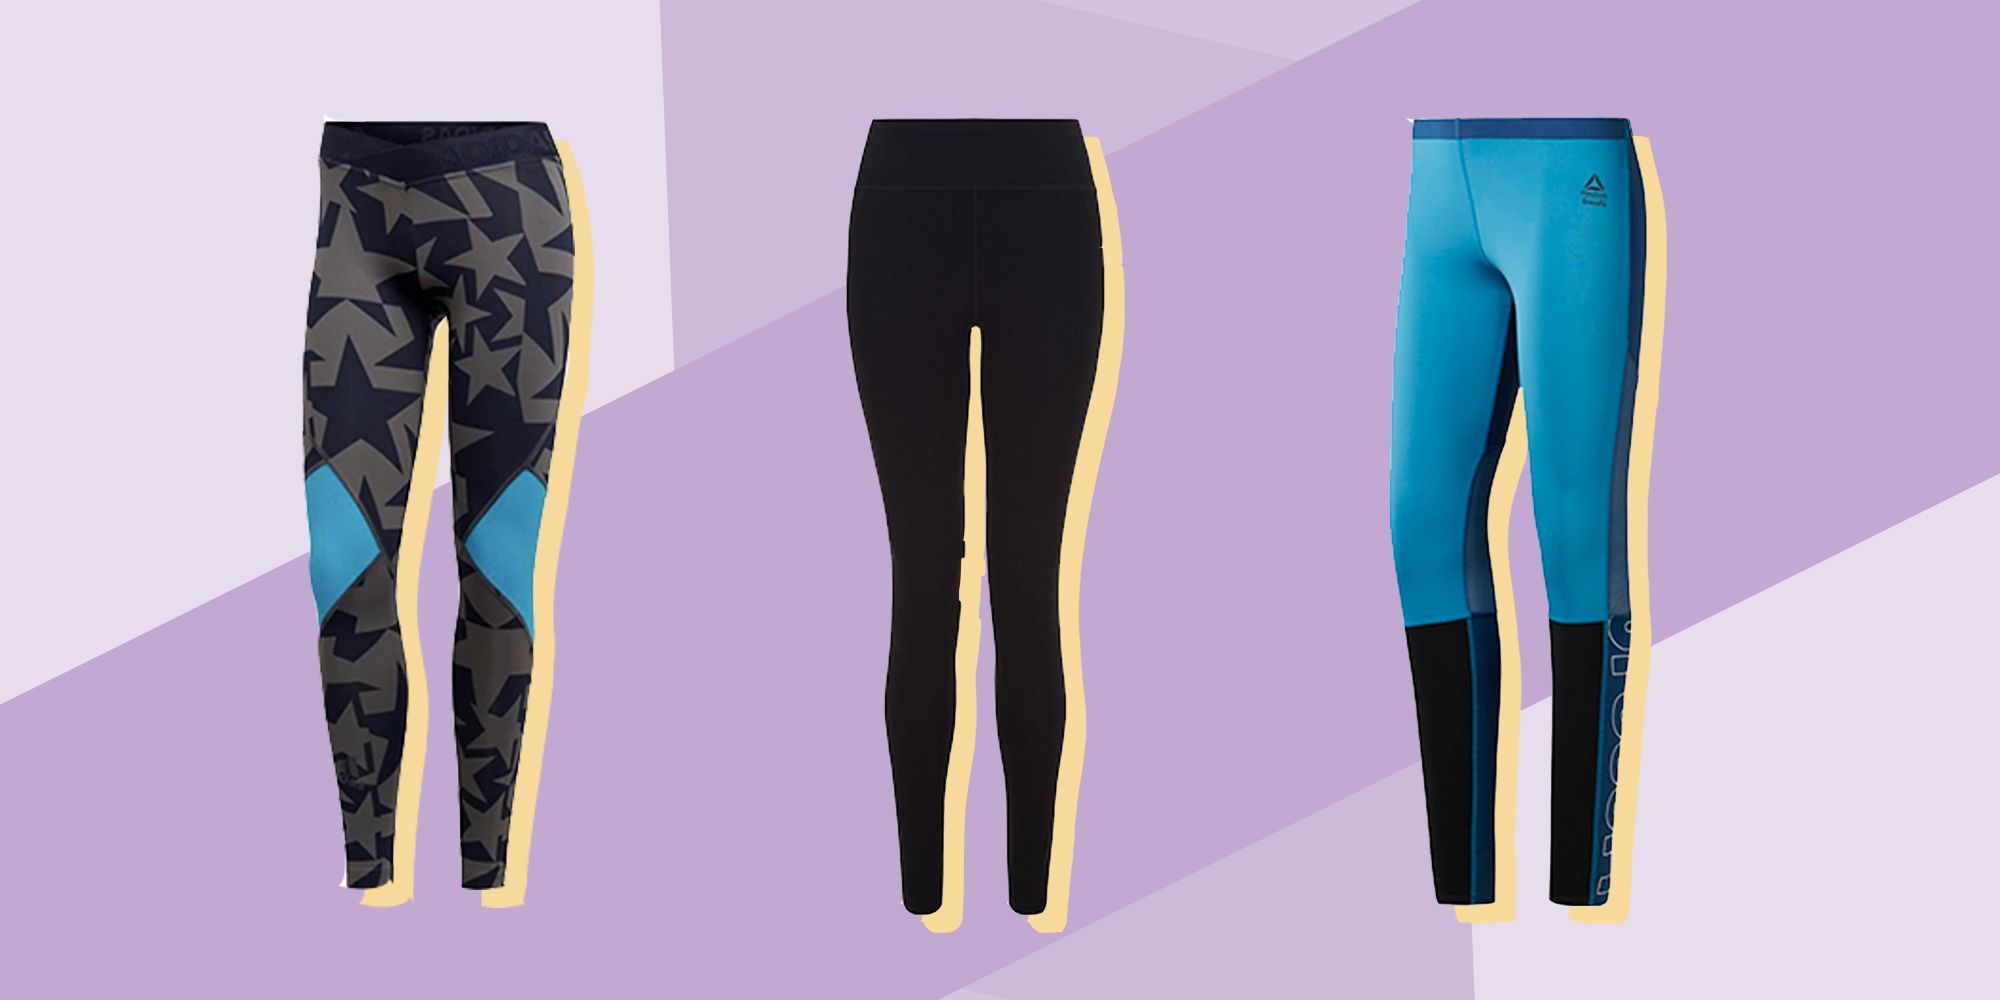 ca36520b2b05d 9 Best Compression Leggings for Women